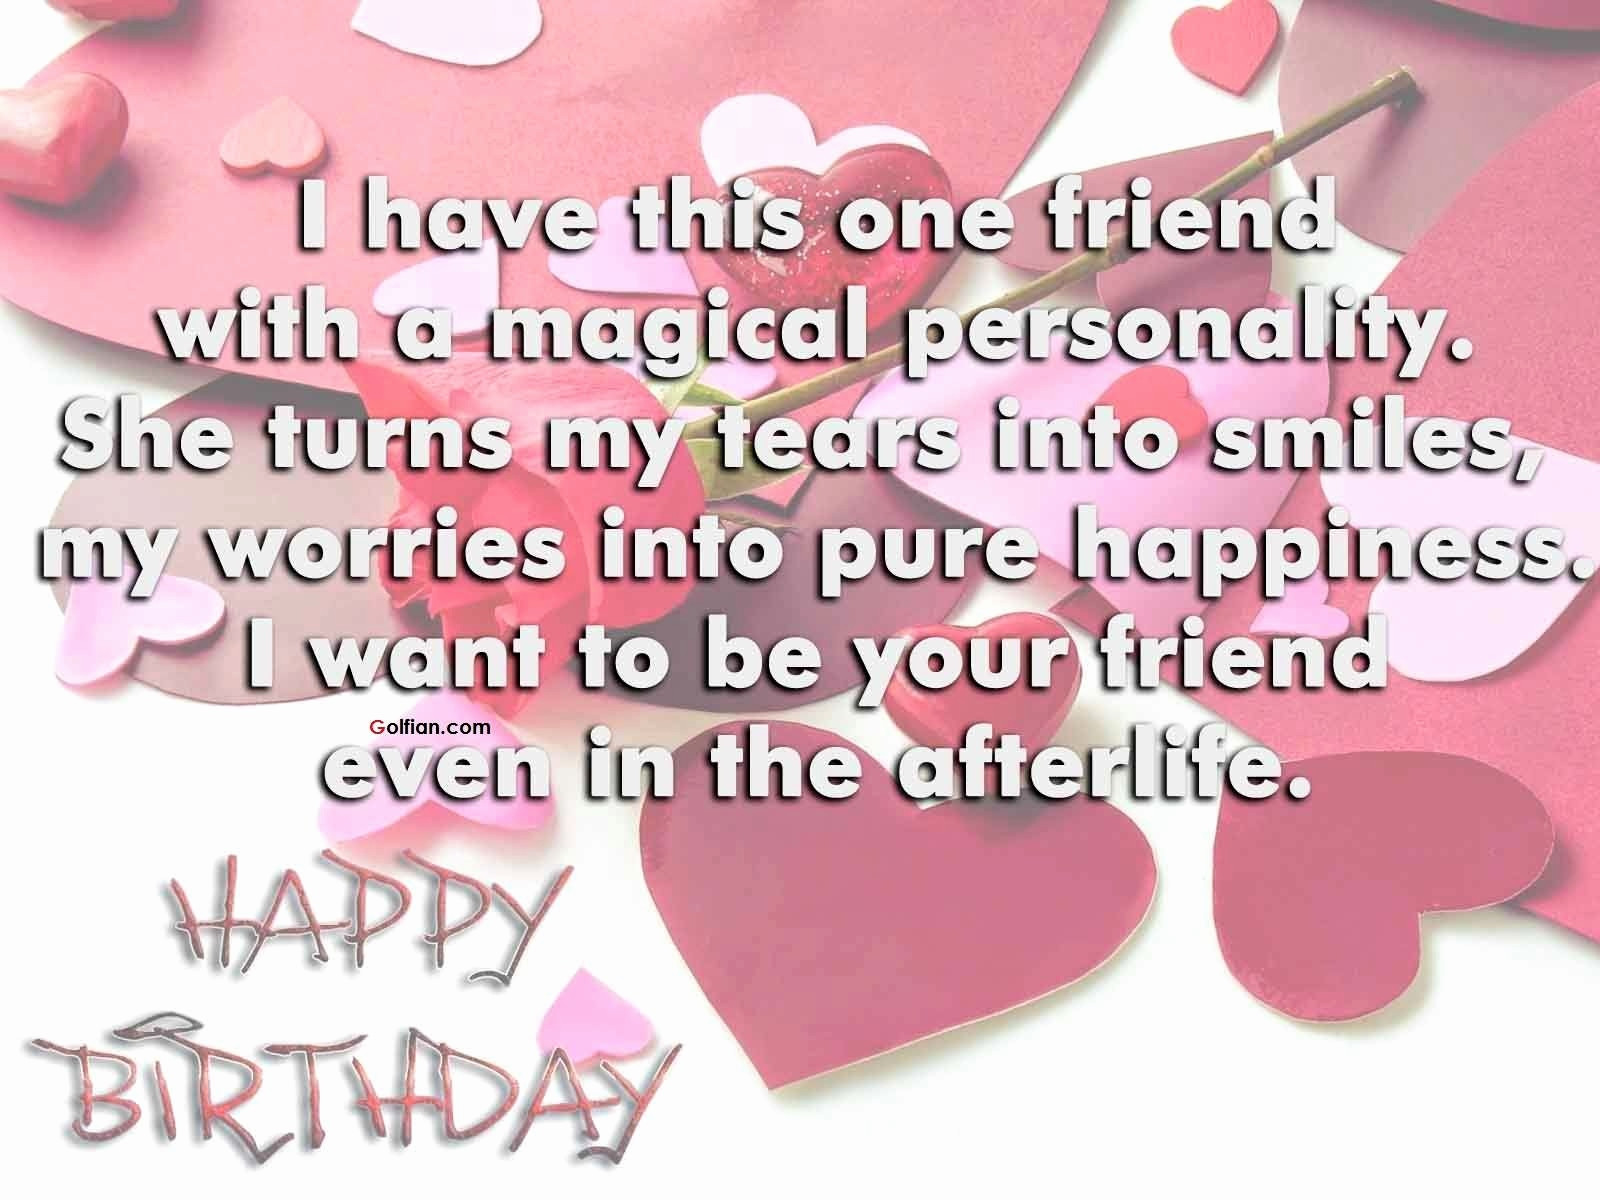 birthday message for a best friend girl ; birthday-wishes-to-a-best-friend-elegant-50-best-pics-happy-birthday-bestfriend-quotes-of-birthday-wishes-to-a-best-friend